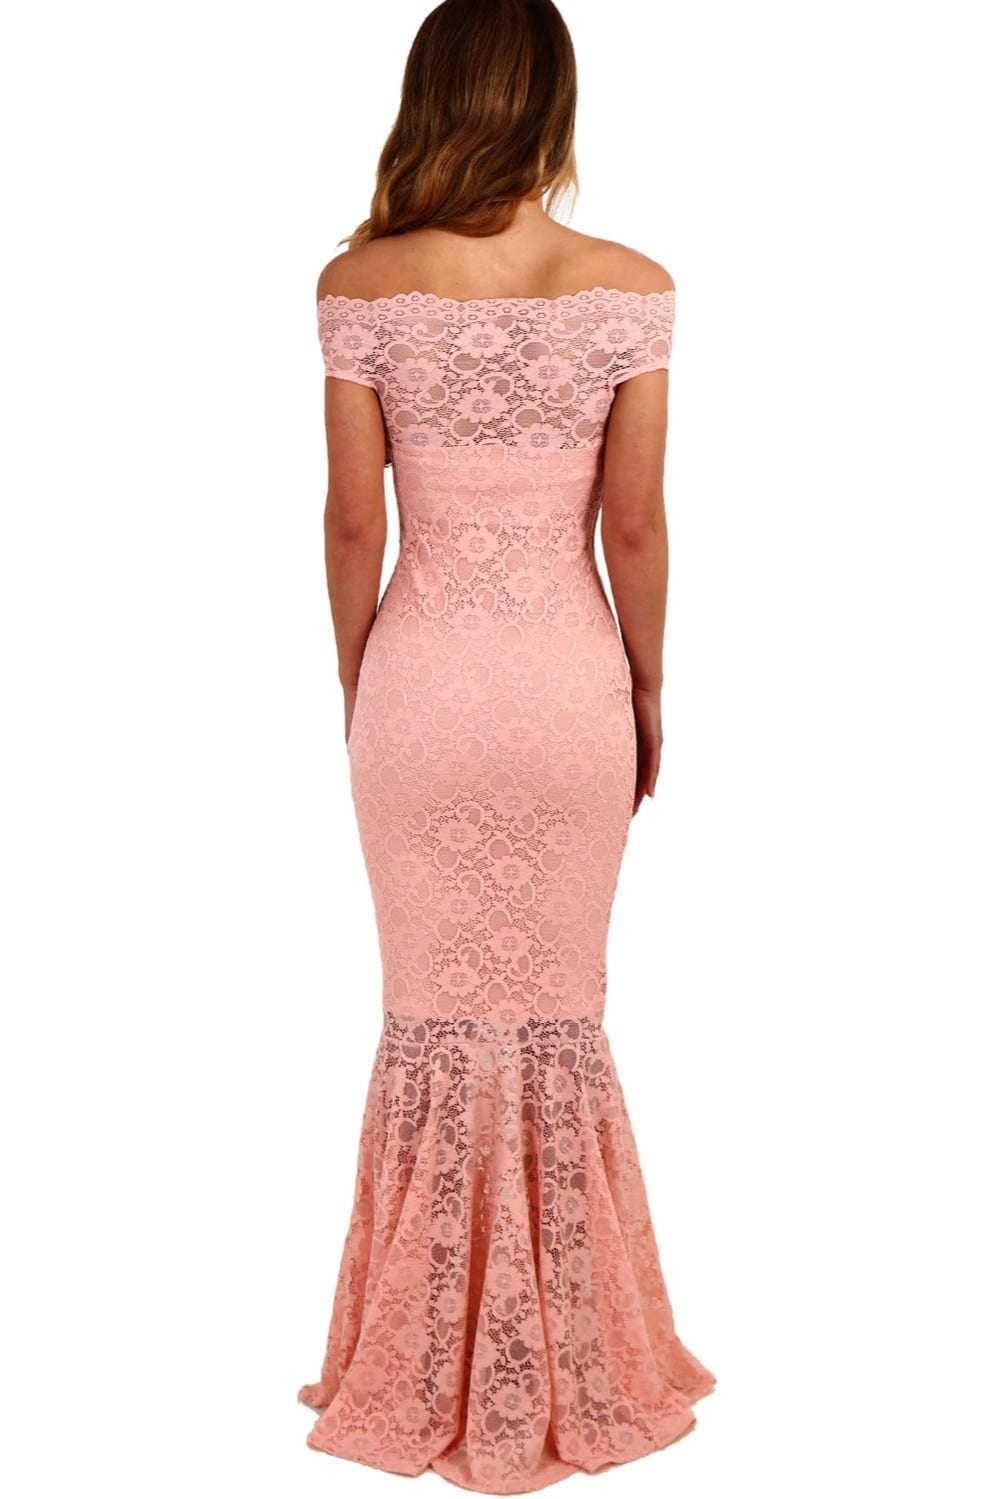 Pink Lace Off Shoulder Hollow Out Maxi Dress